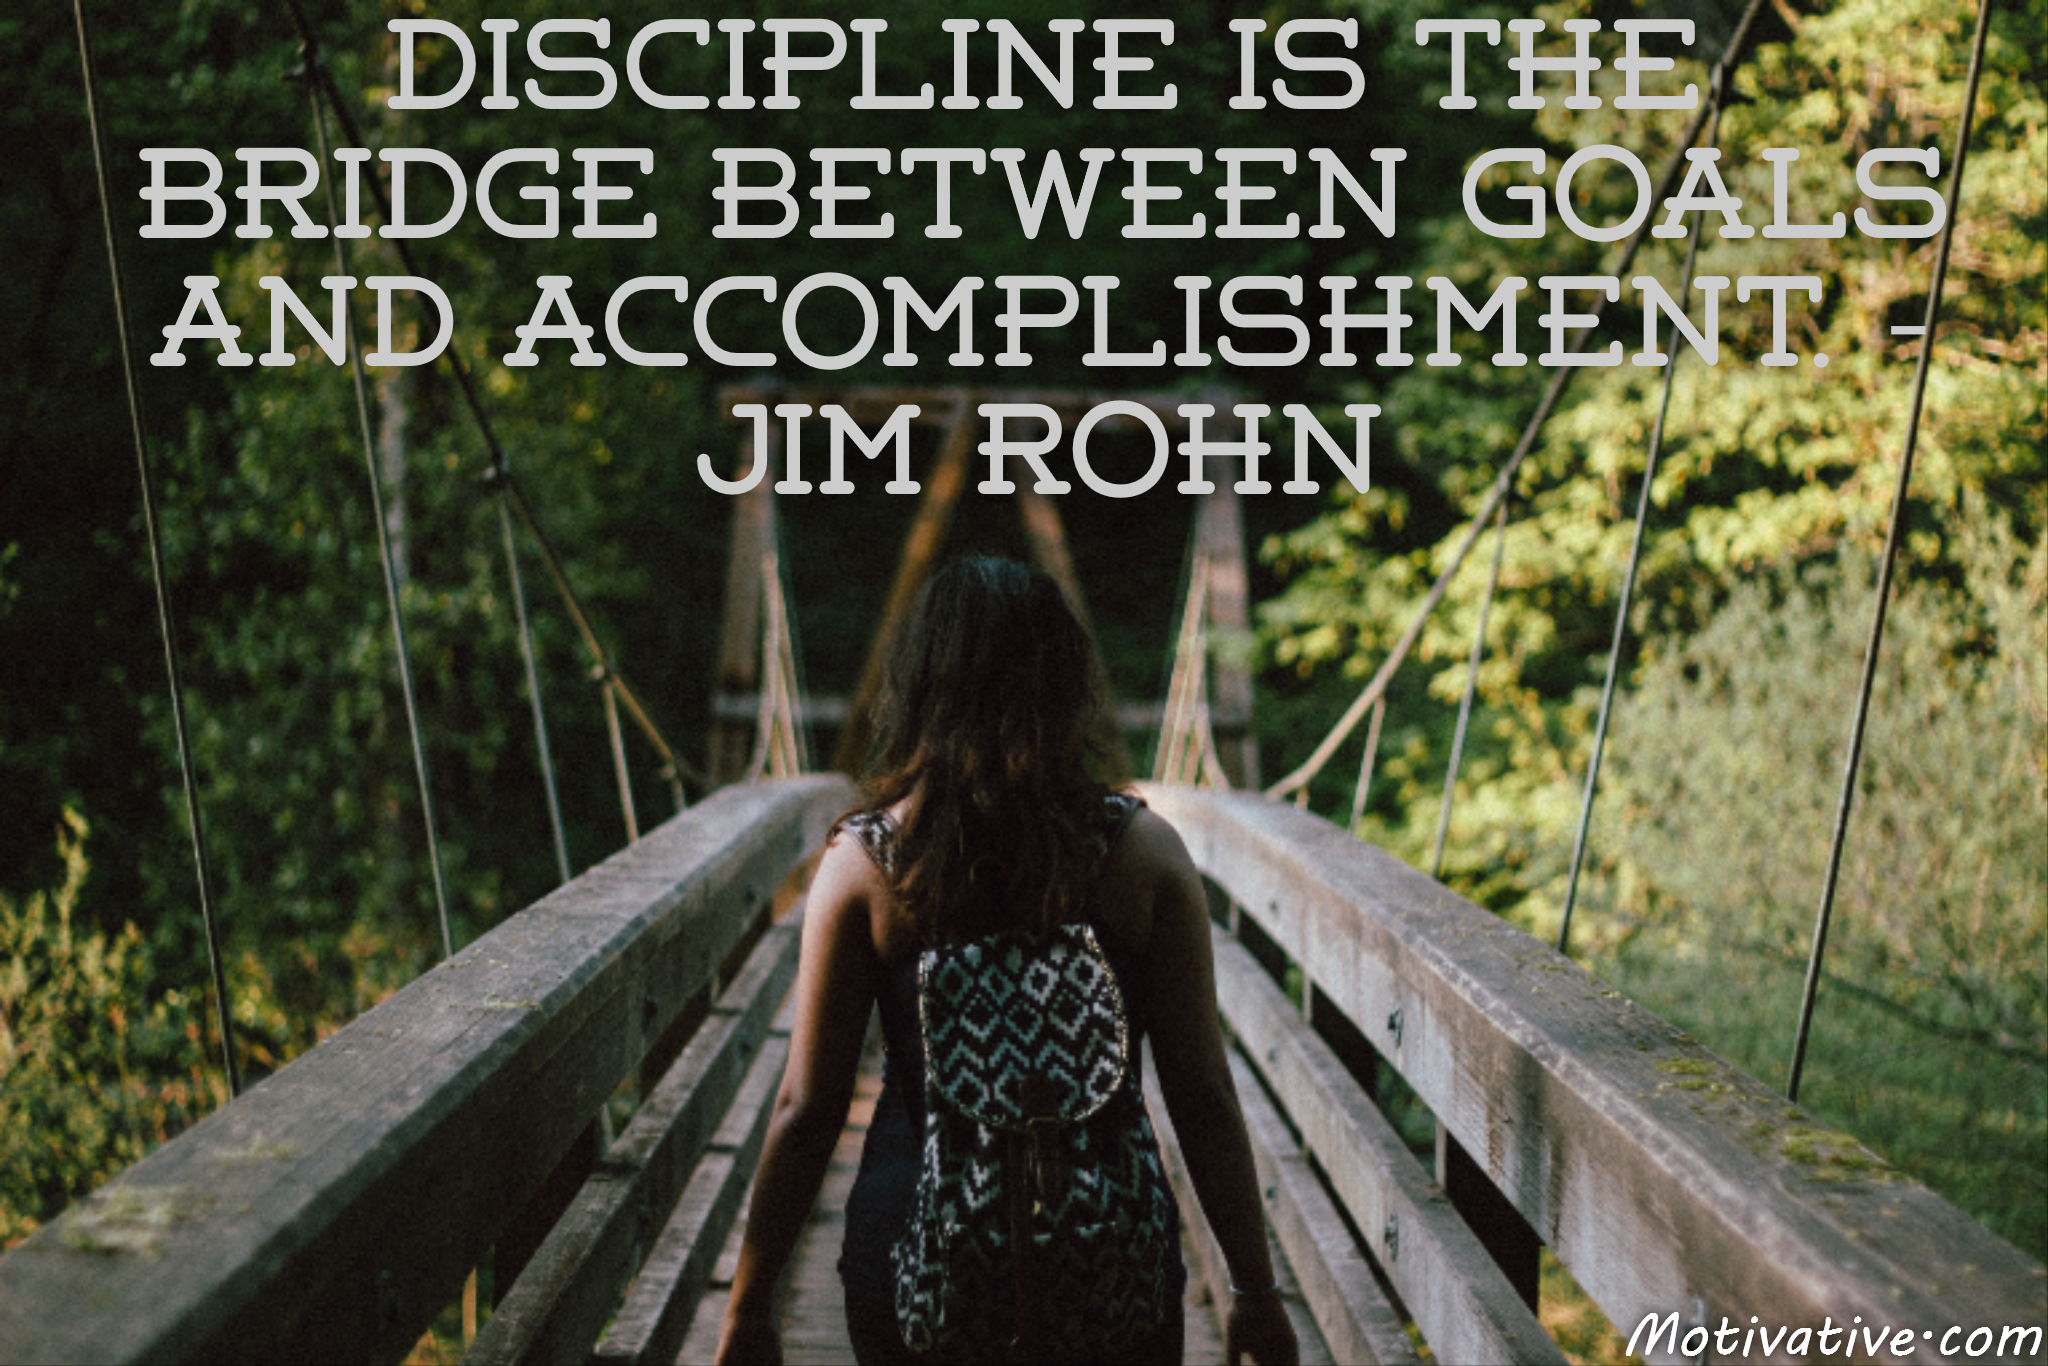 Discipline is the bridge between goals and accomplishment. – Jim Rohn